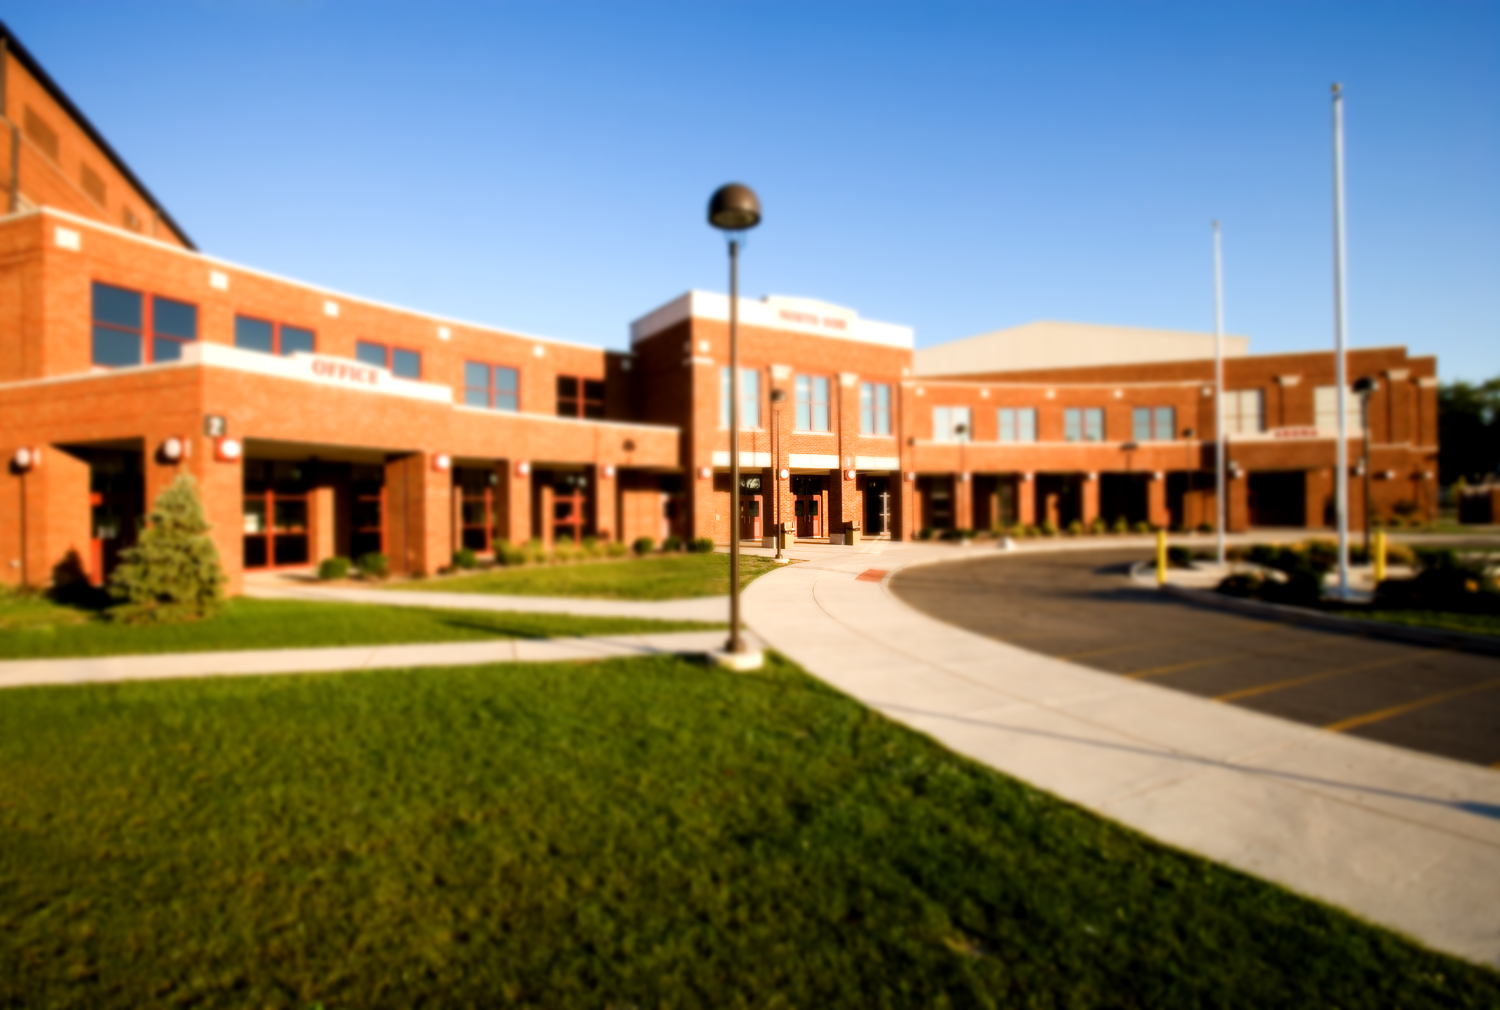 Nyc Charter High School For Architecture Engineering And Construction